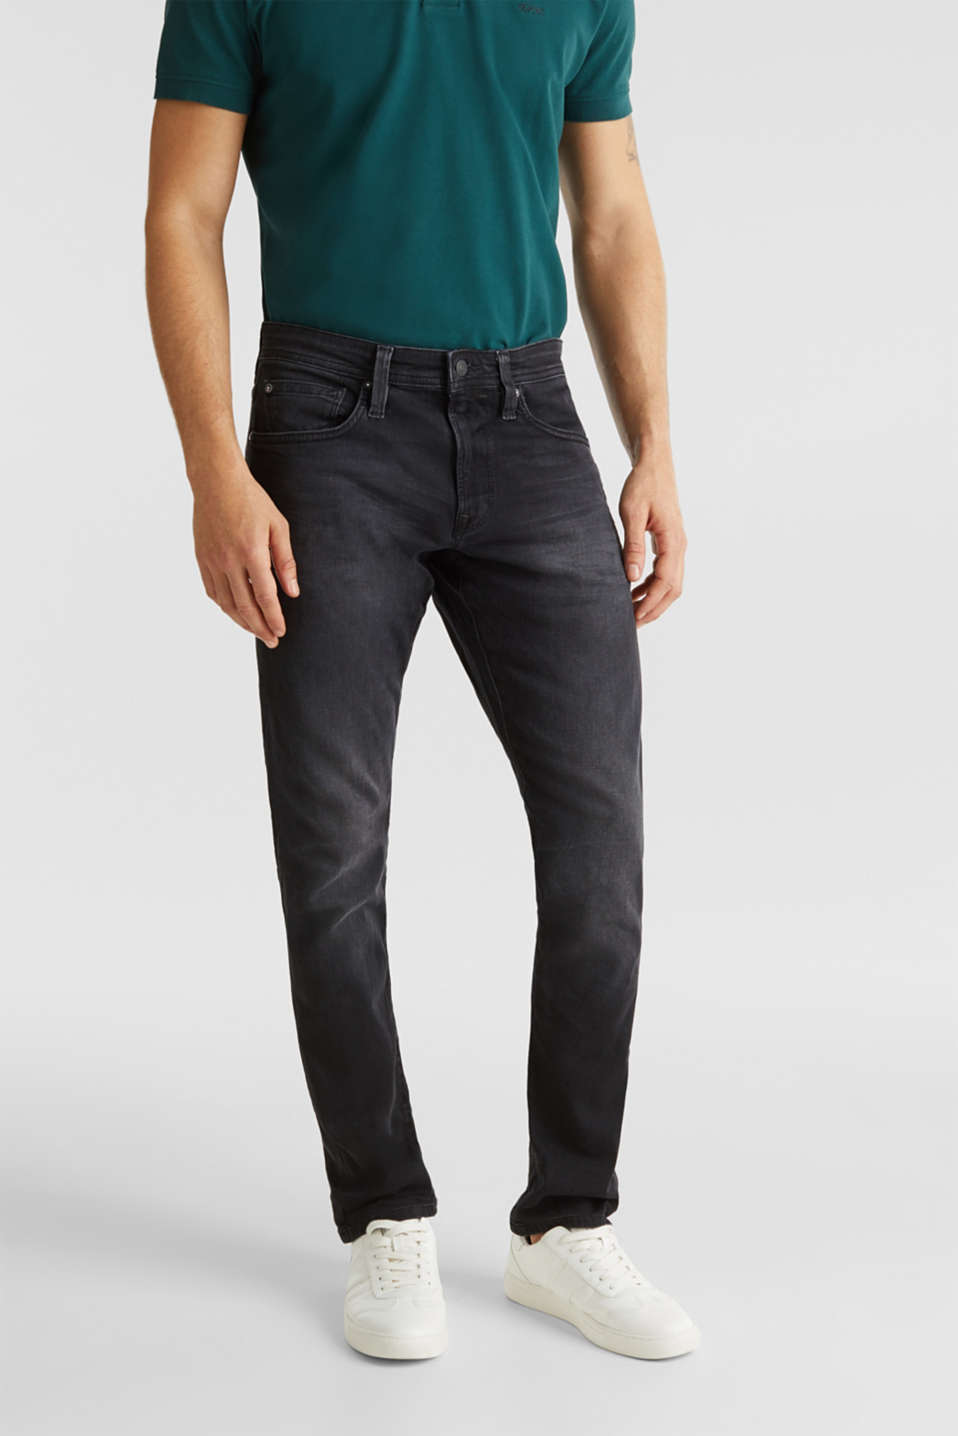 edc - Black stretch jeans